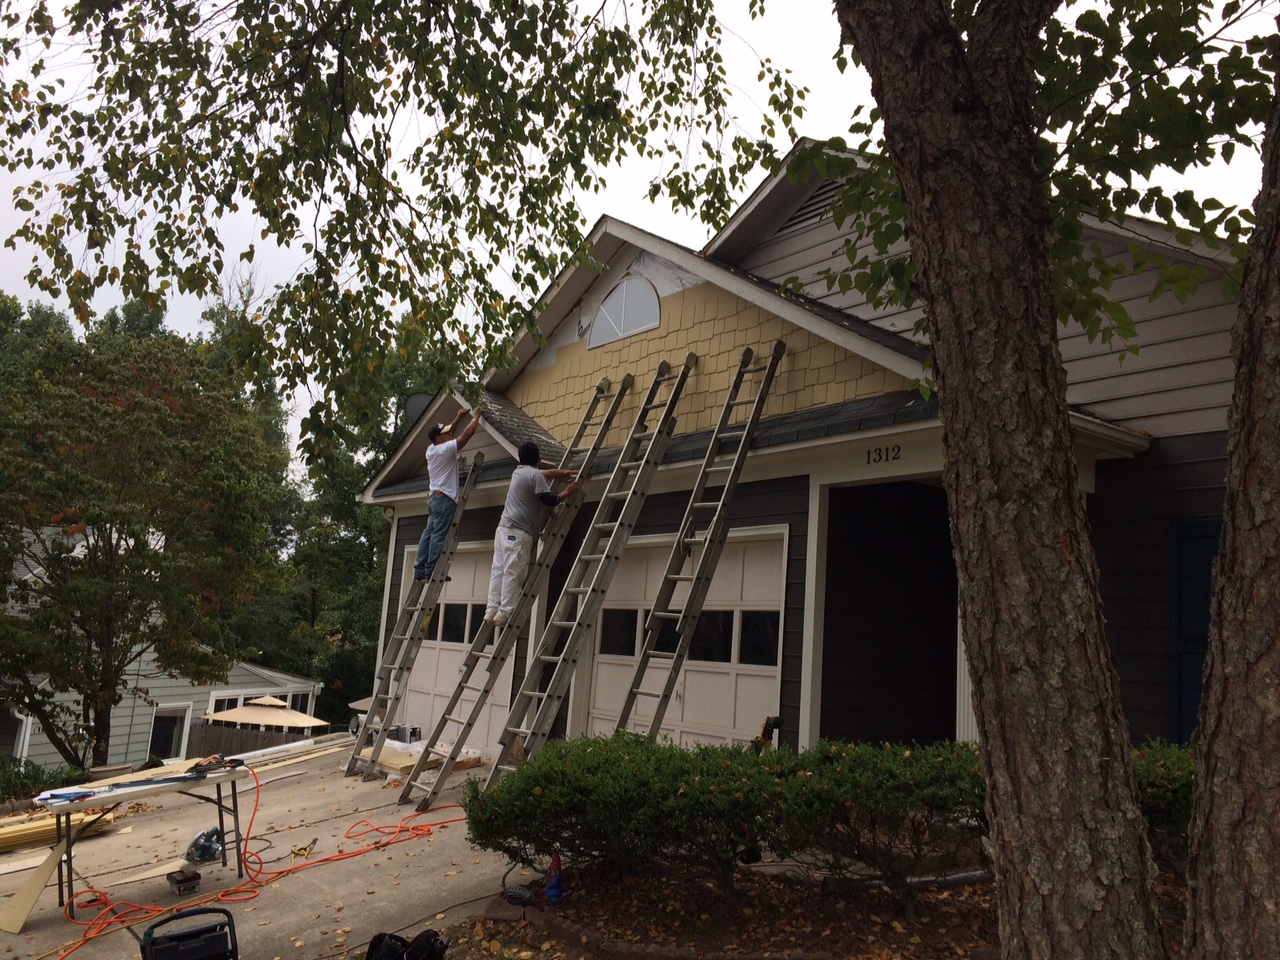 In Progress: Belk Builders is replacing this Concord, NC, home's siding with HardiePlank and shake siding in